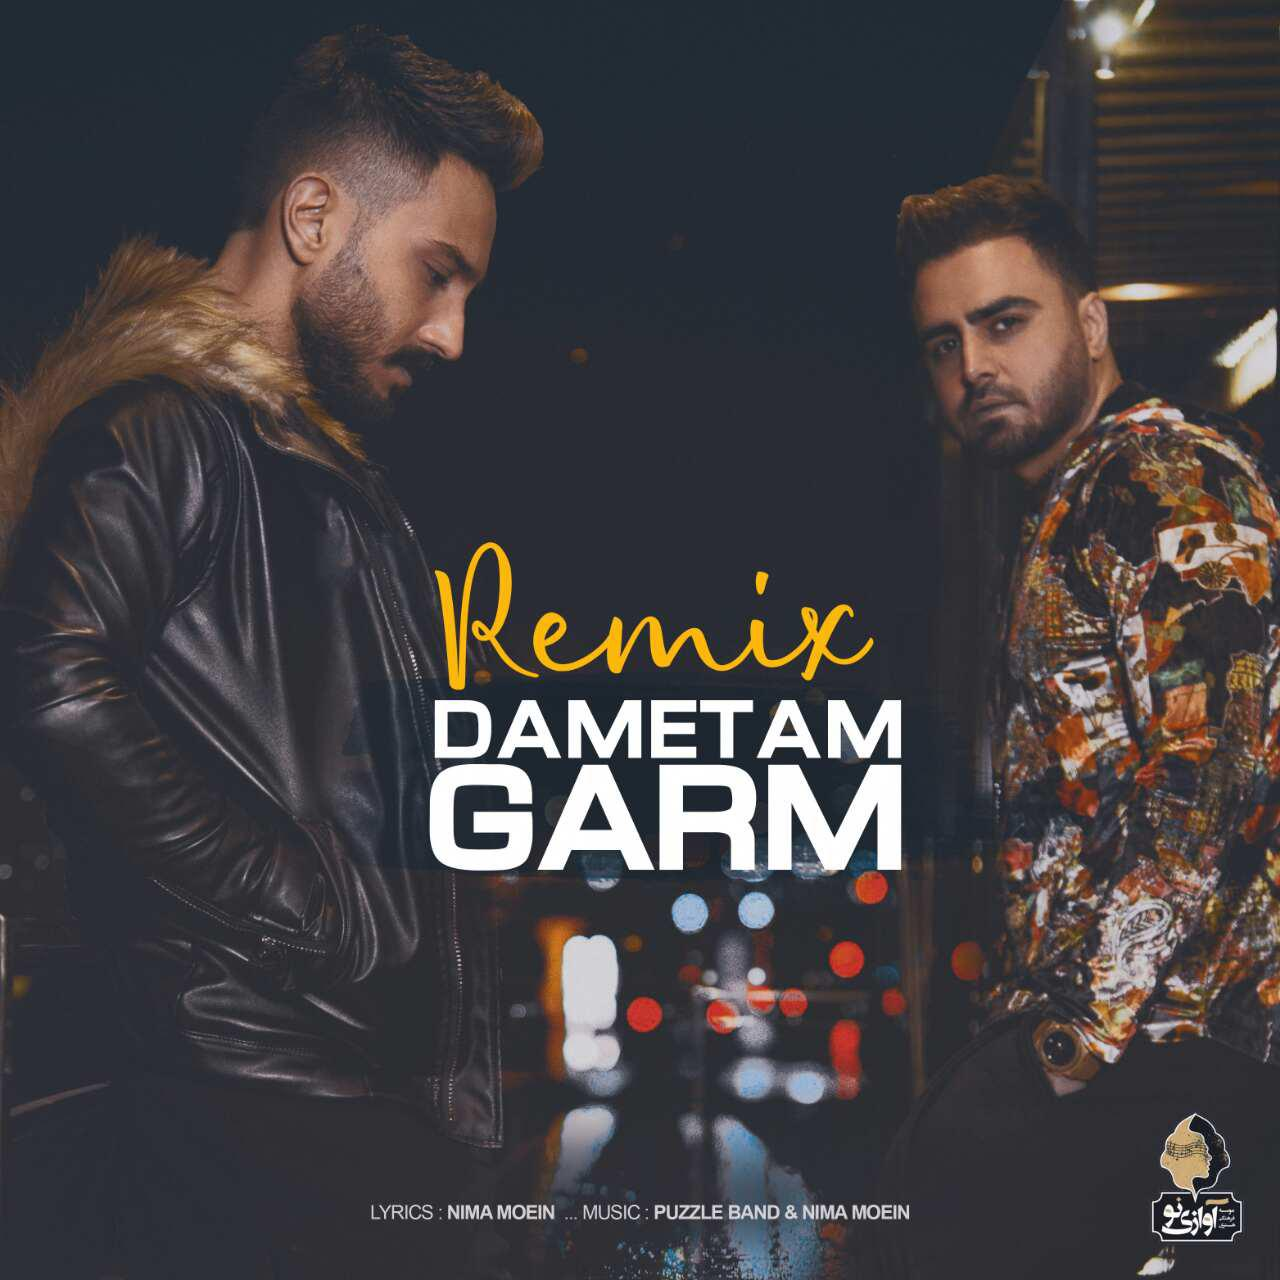 Puzzle Band – Dametam Garm (Remix)